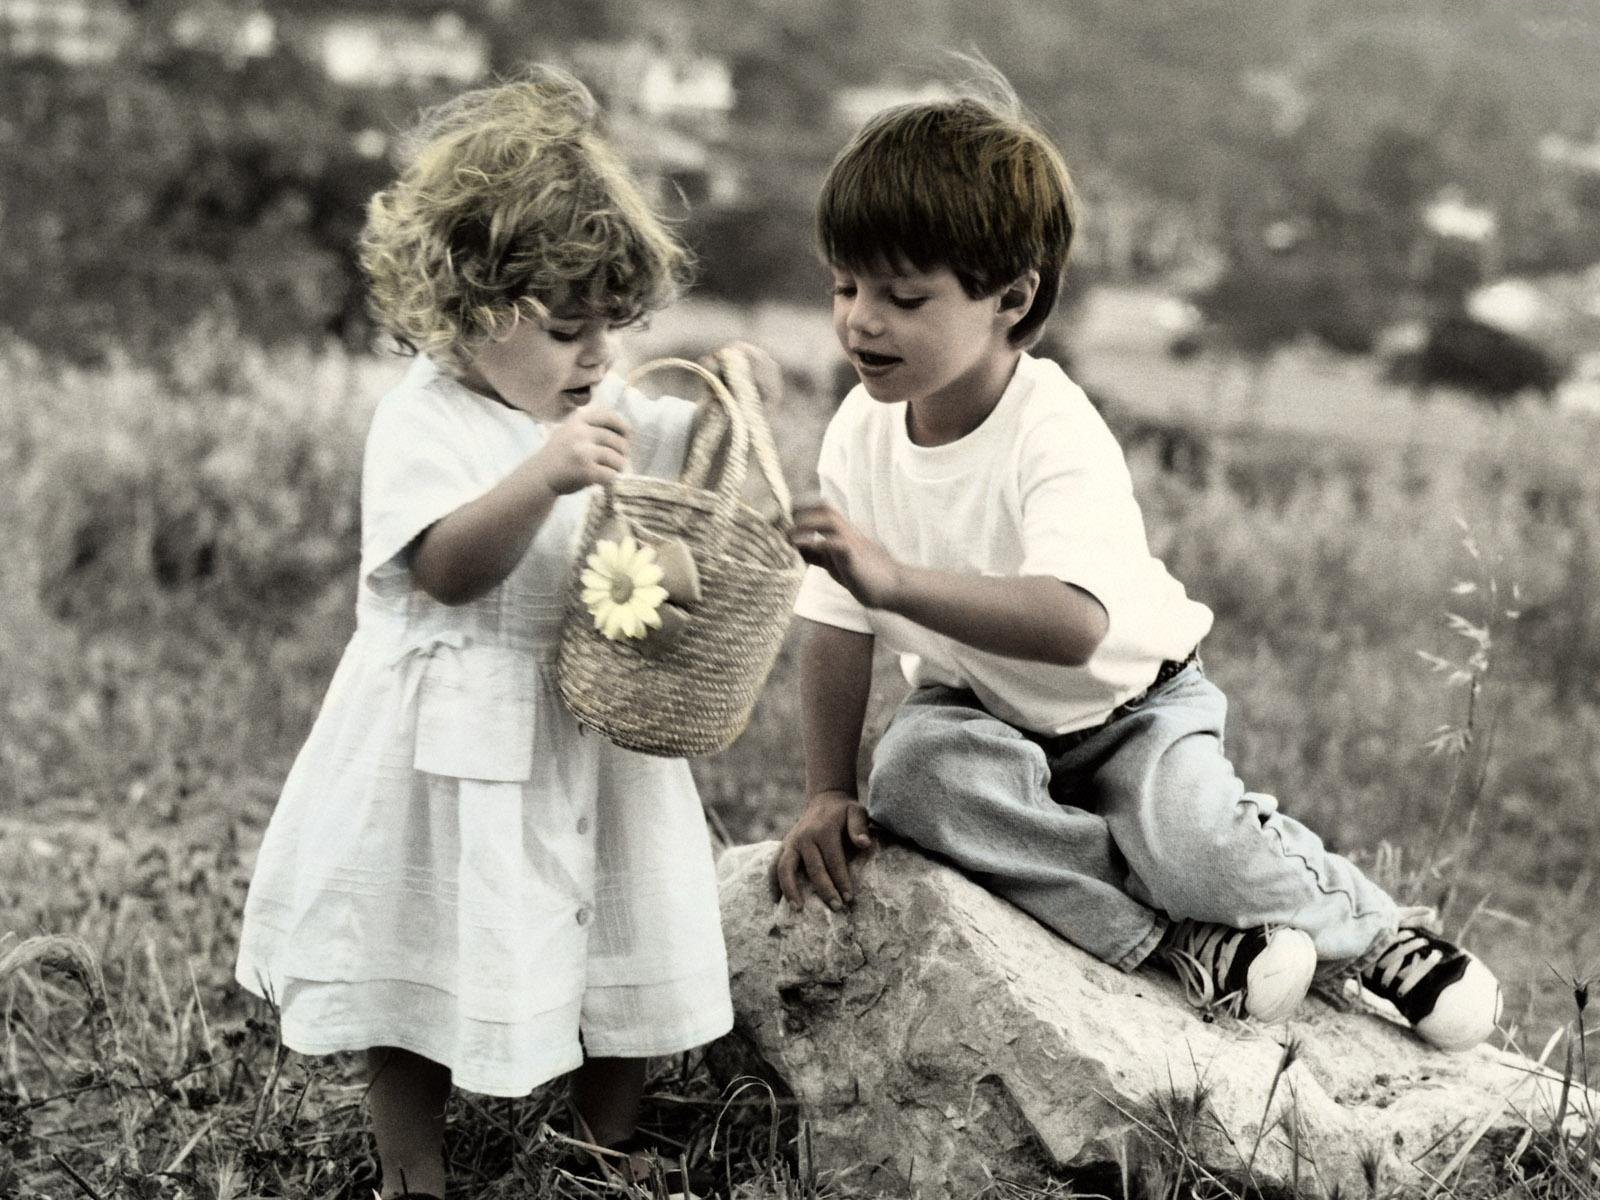 Boy And Girl Best Friends Wallpapers Hd Download Free Best Friends Forever Backgrounds